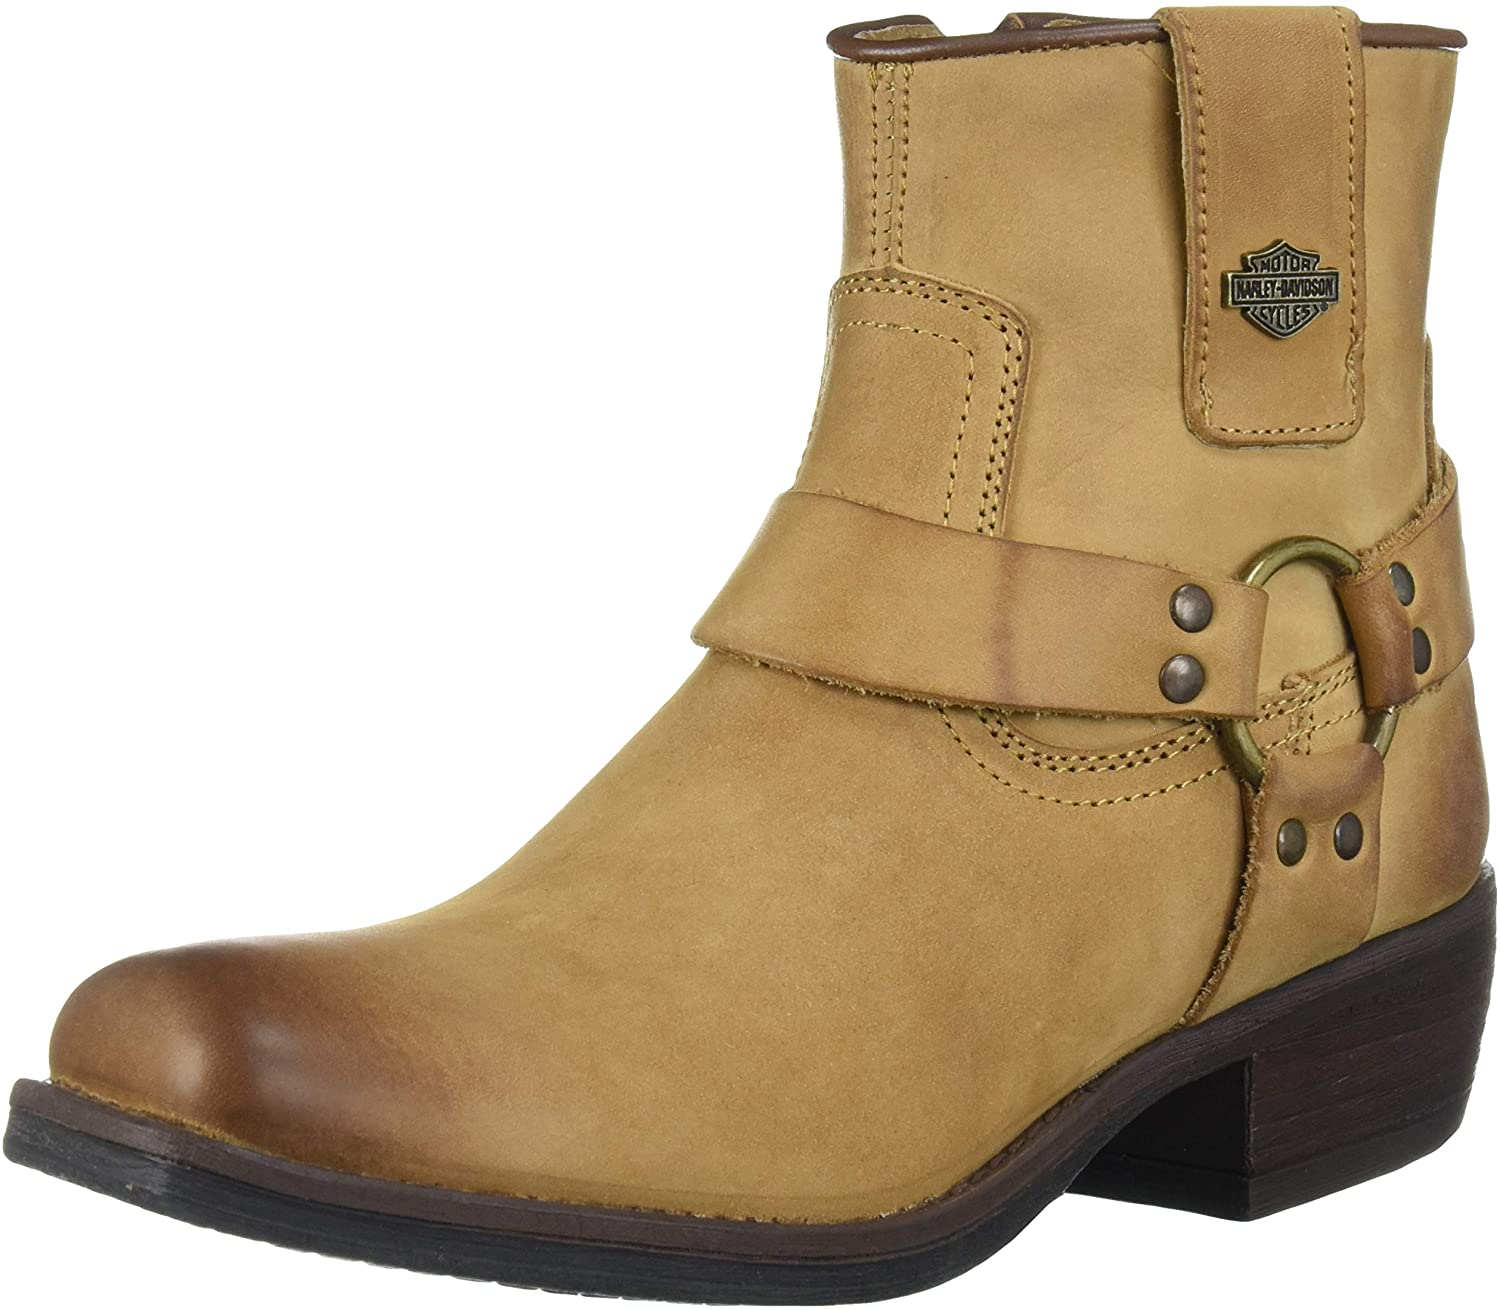 Harley-Davidson Womens Abbington Fashion Boot